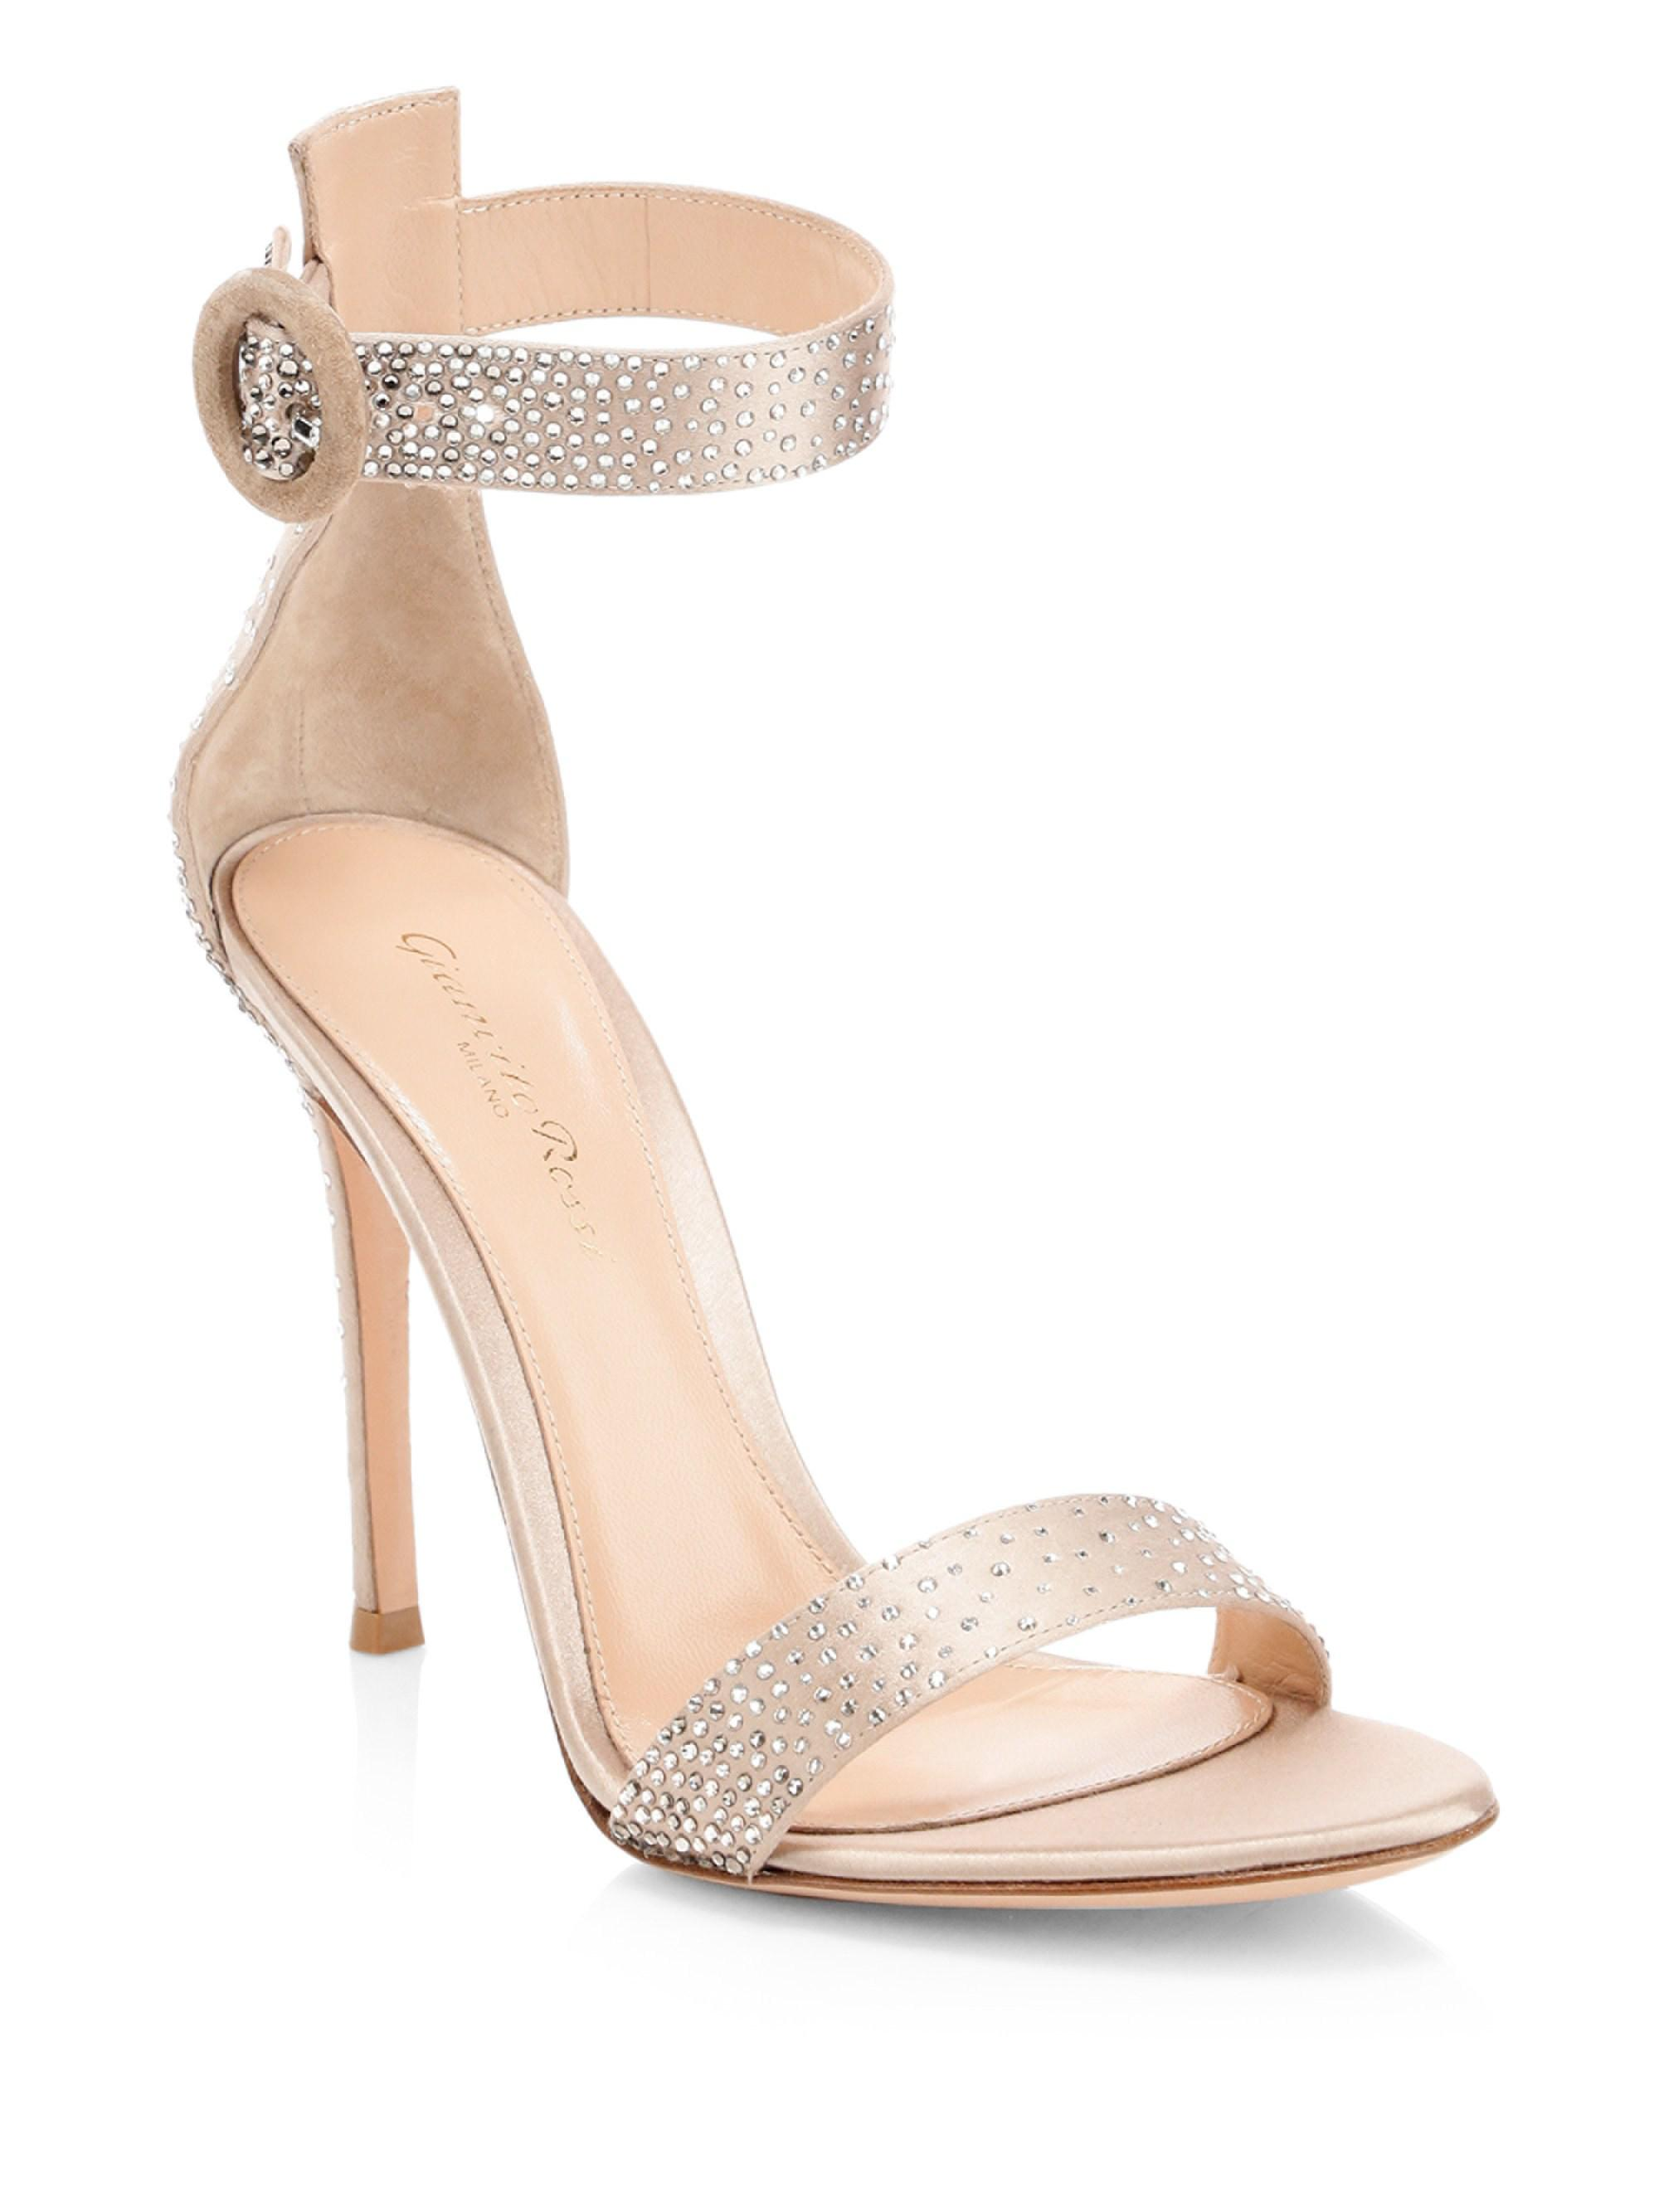 820e3989458f lyst – gianvito rossi strass crystal embellished sandals. Download Image  2000 X 2667